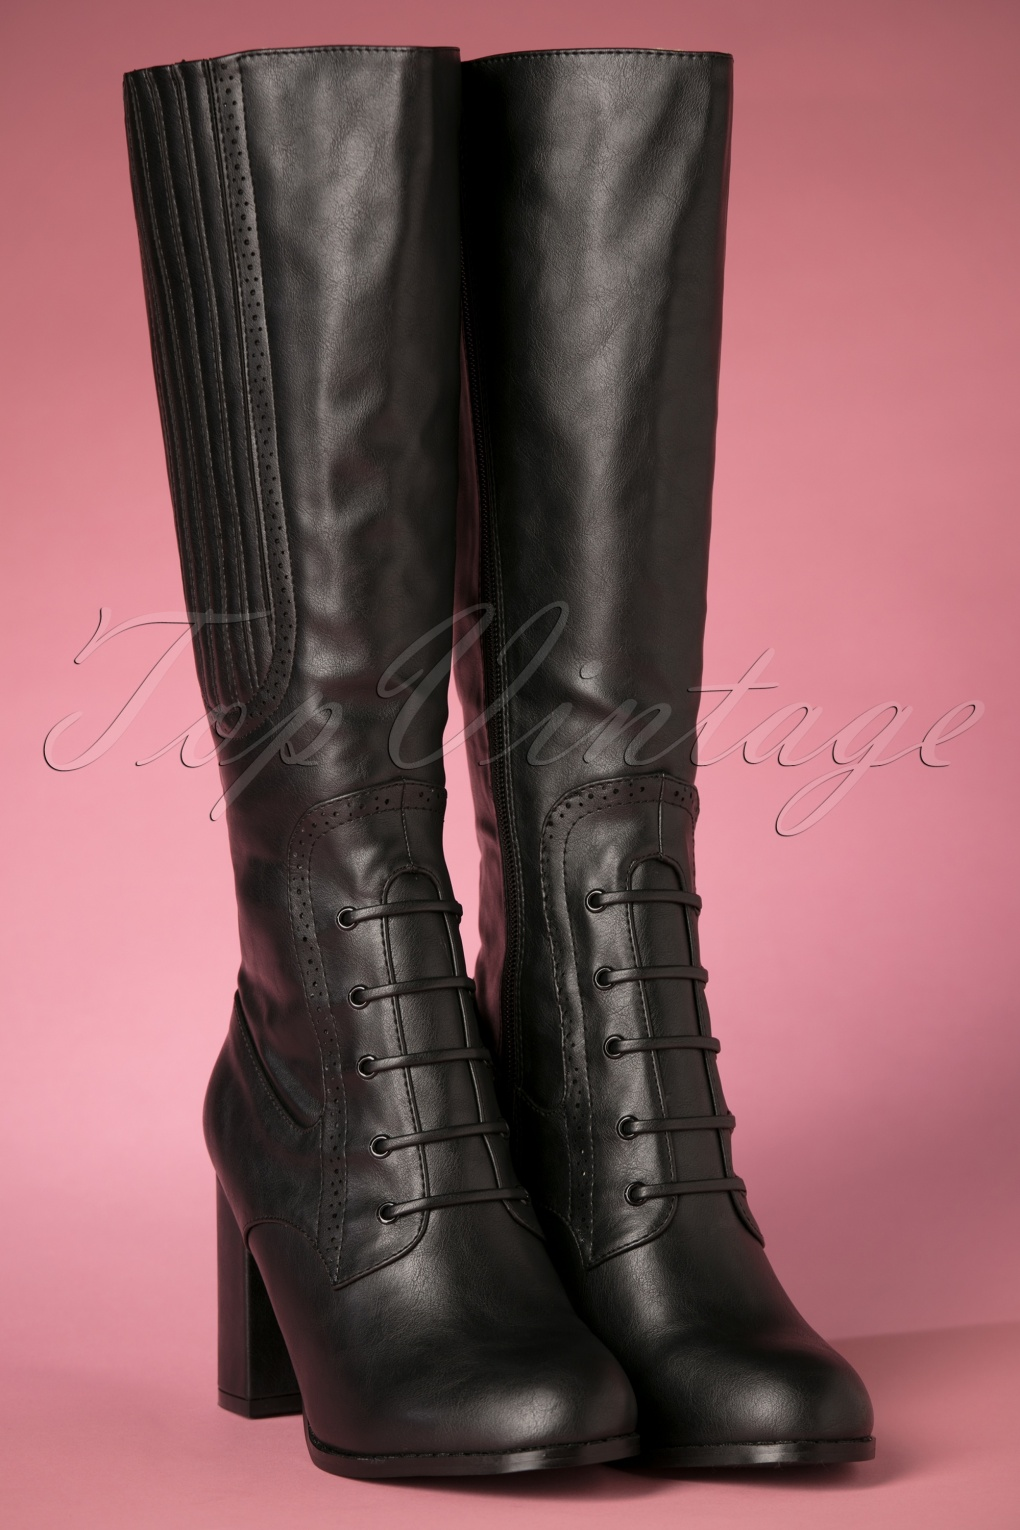 Steampunk Boots & Shoes, Heels & Flats 40s Roscoe Boots in Black £91.77 AT vintagedancer.com